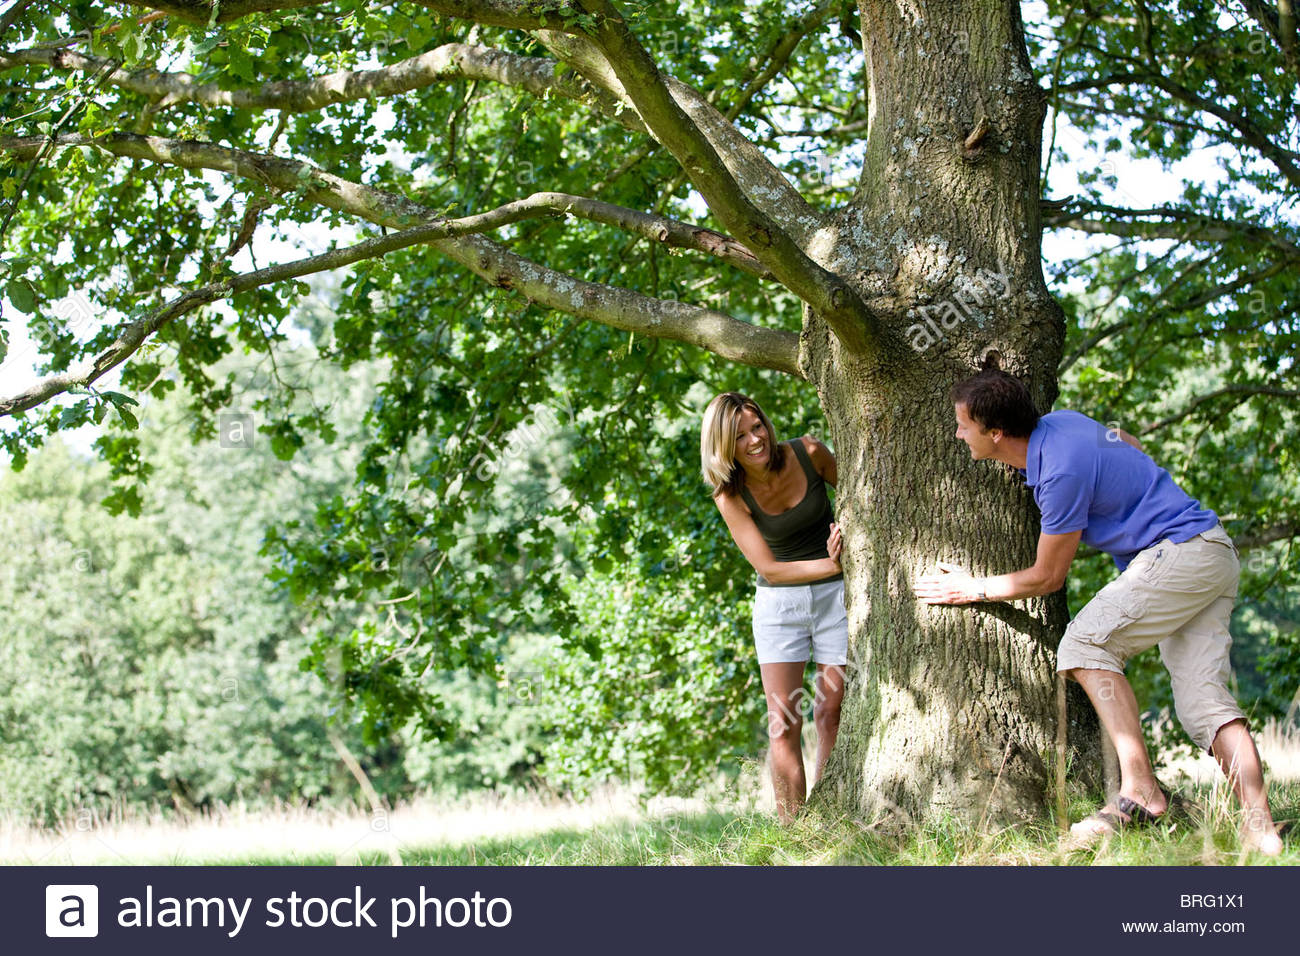 A middle aged couple playing hide and seek - Stock Image